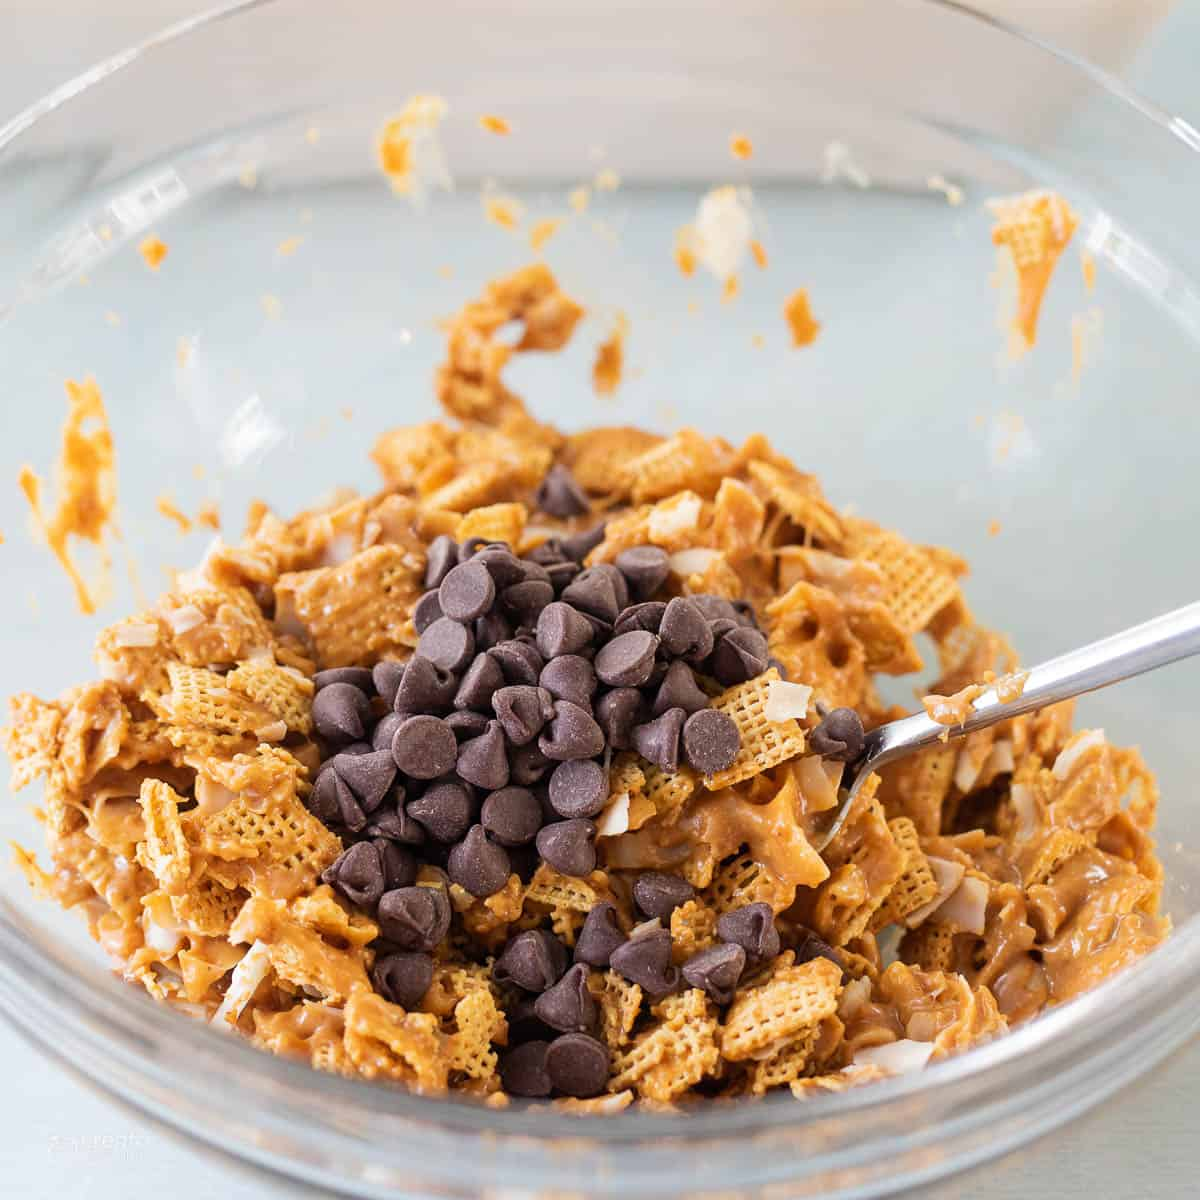 chocolate chips mixed into granola bar ingredients